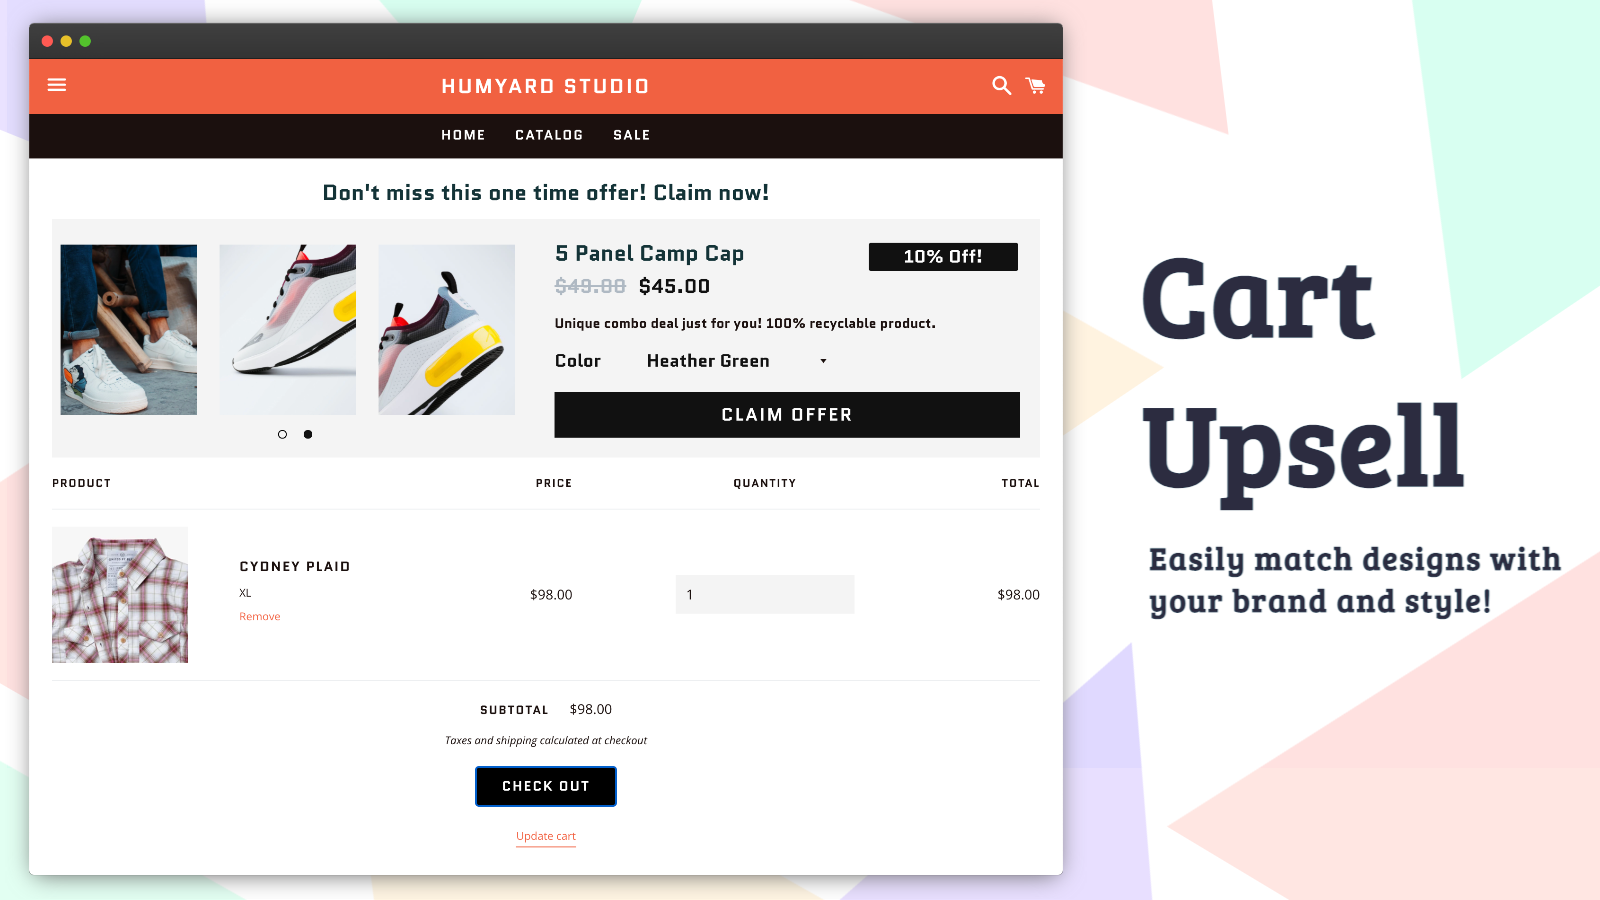 In cart upsell